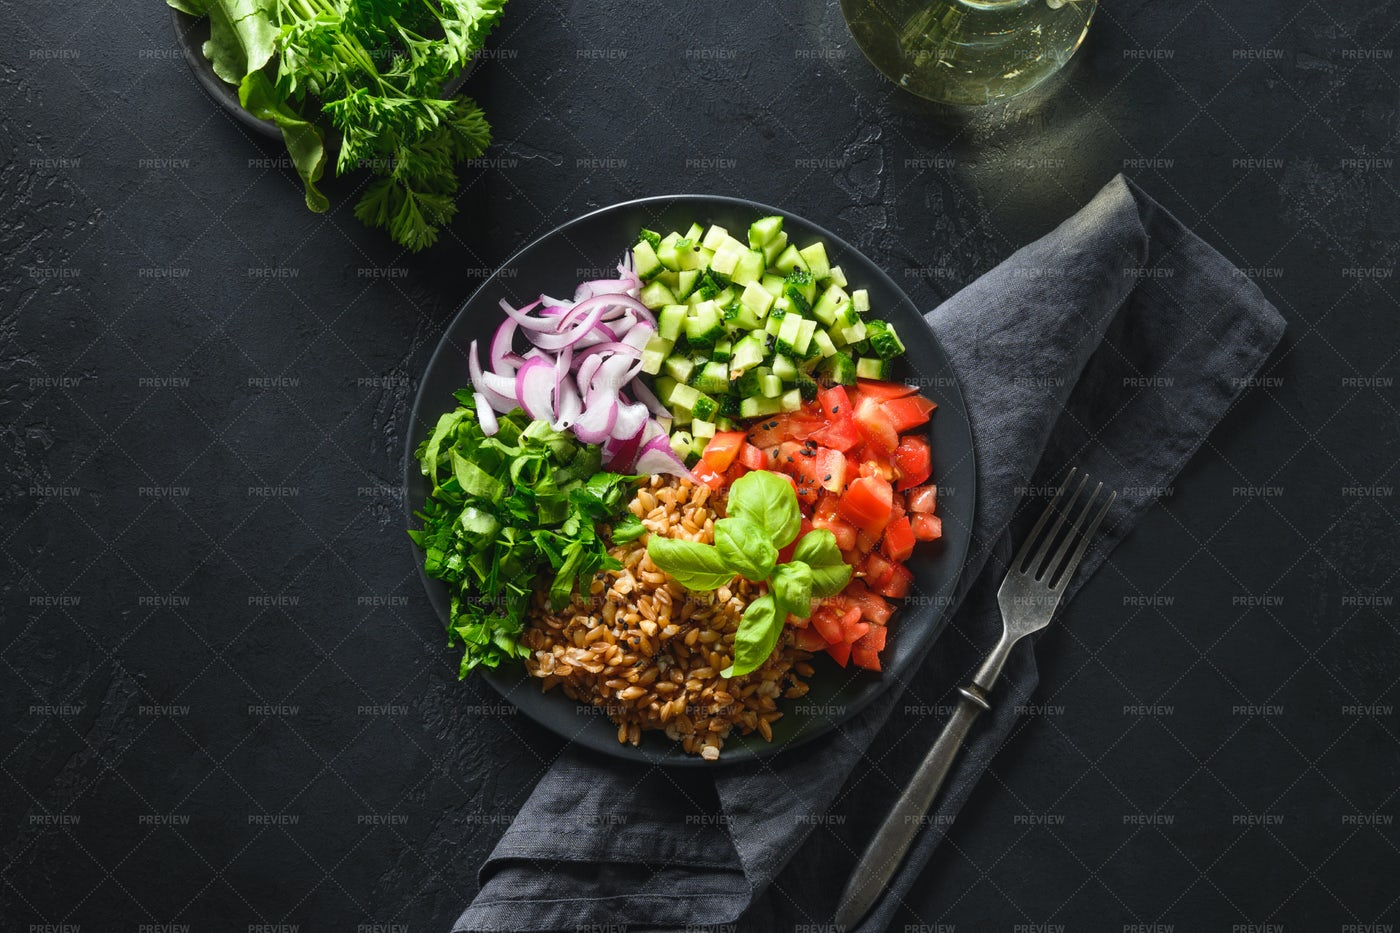 Spelt And Vegetables In Bowl: Stock Photos